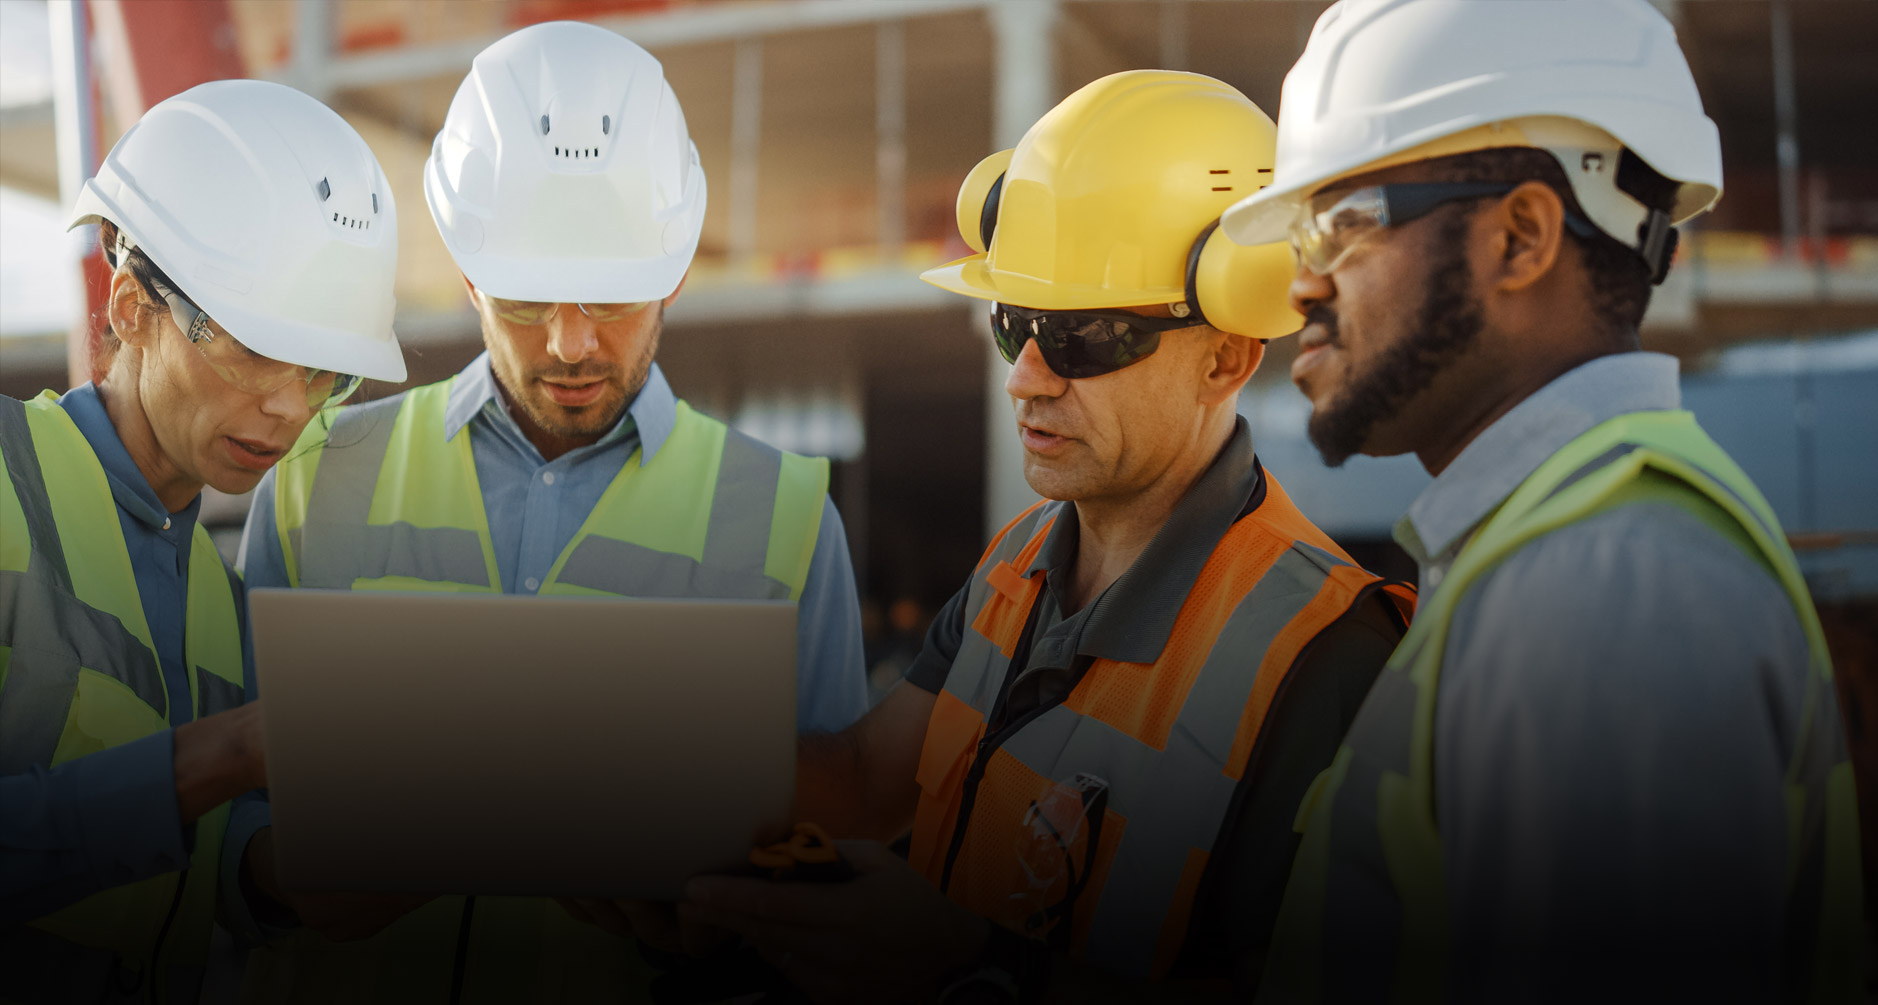 Construction IoT Cyber Risk